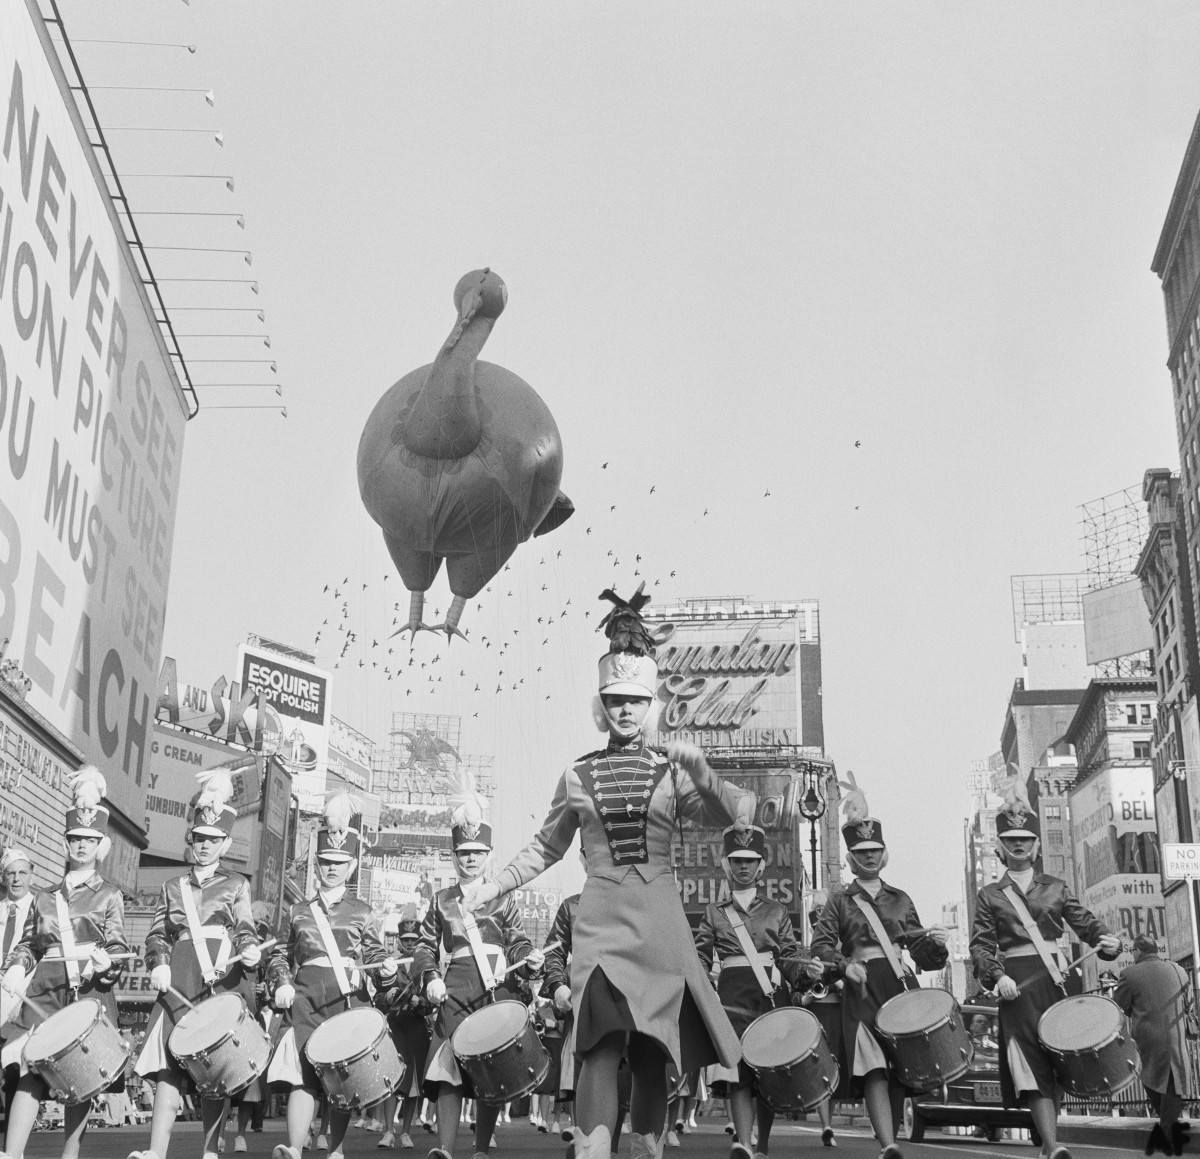 A helium-filled Turkey on it's way through Times Square in 1959, accompanied by a marching band.